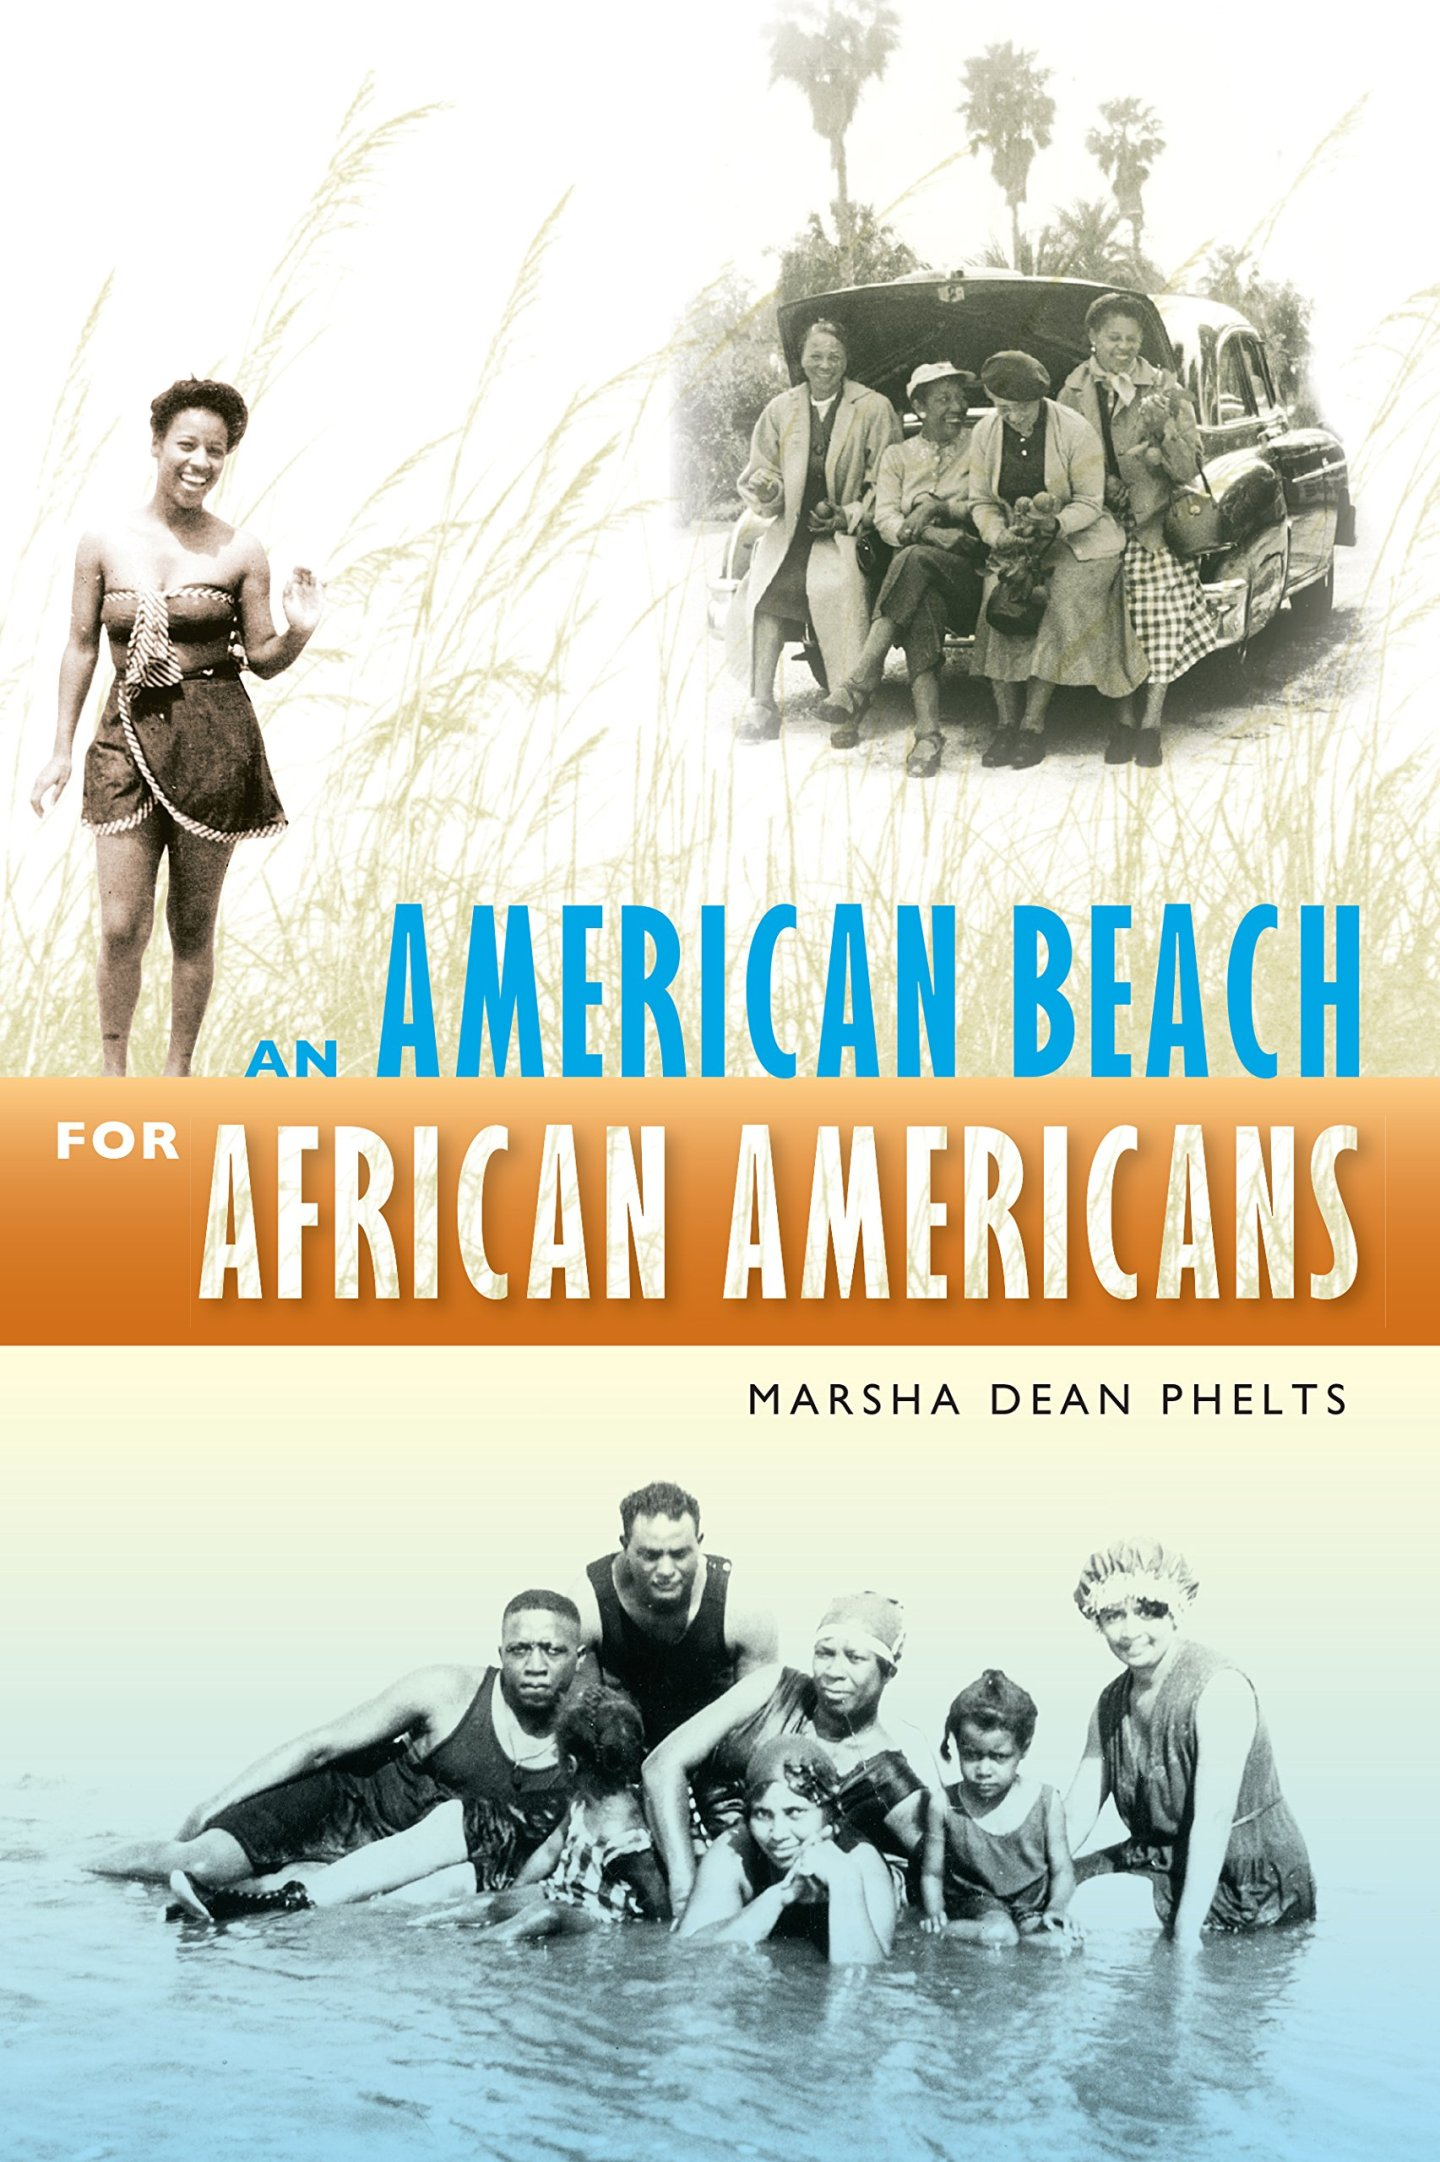 russ-rymer Black Millionaires, Entrepreneurs & the Middle Class: American Beach, Florida Heritage Books to Explore